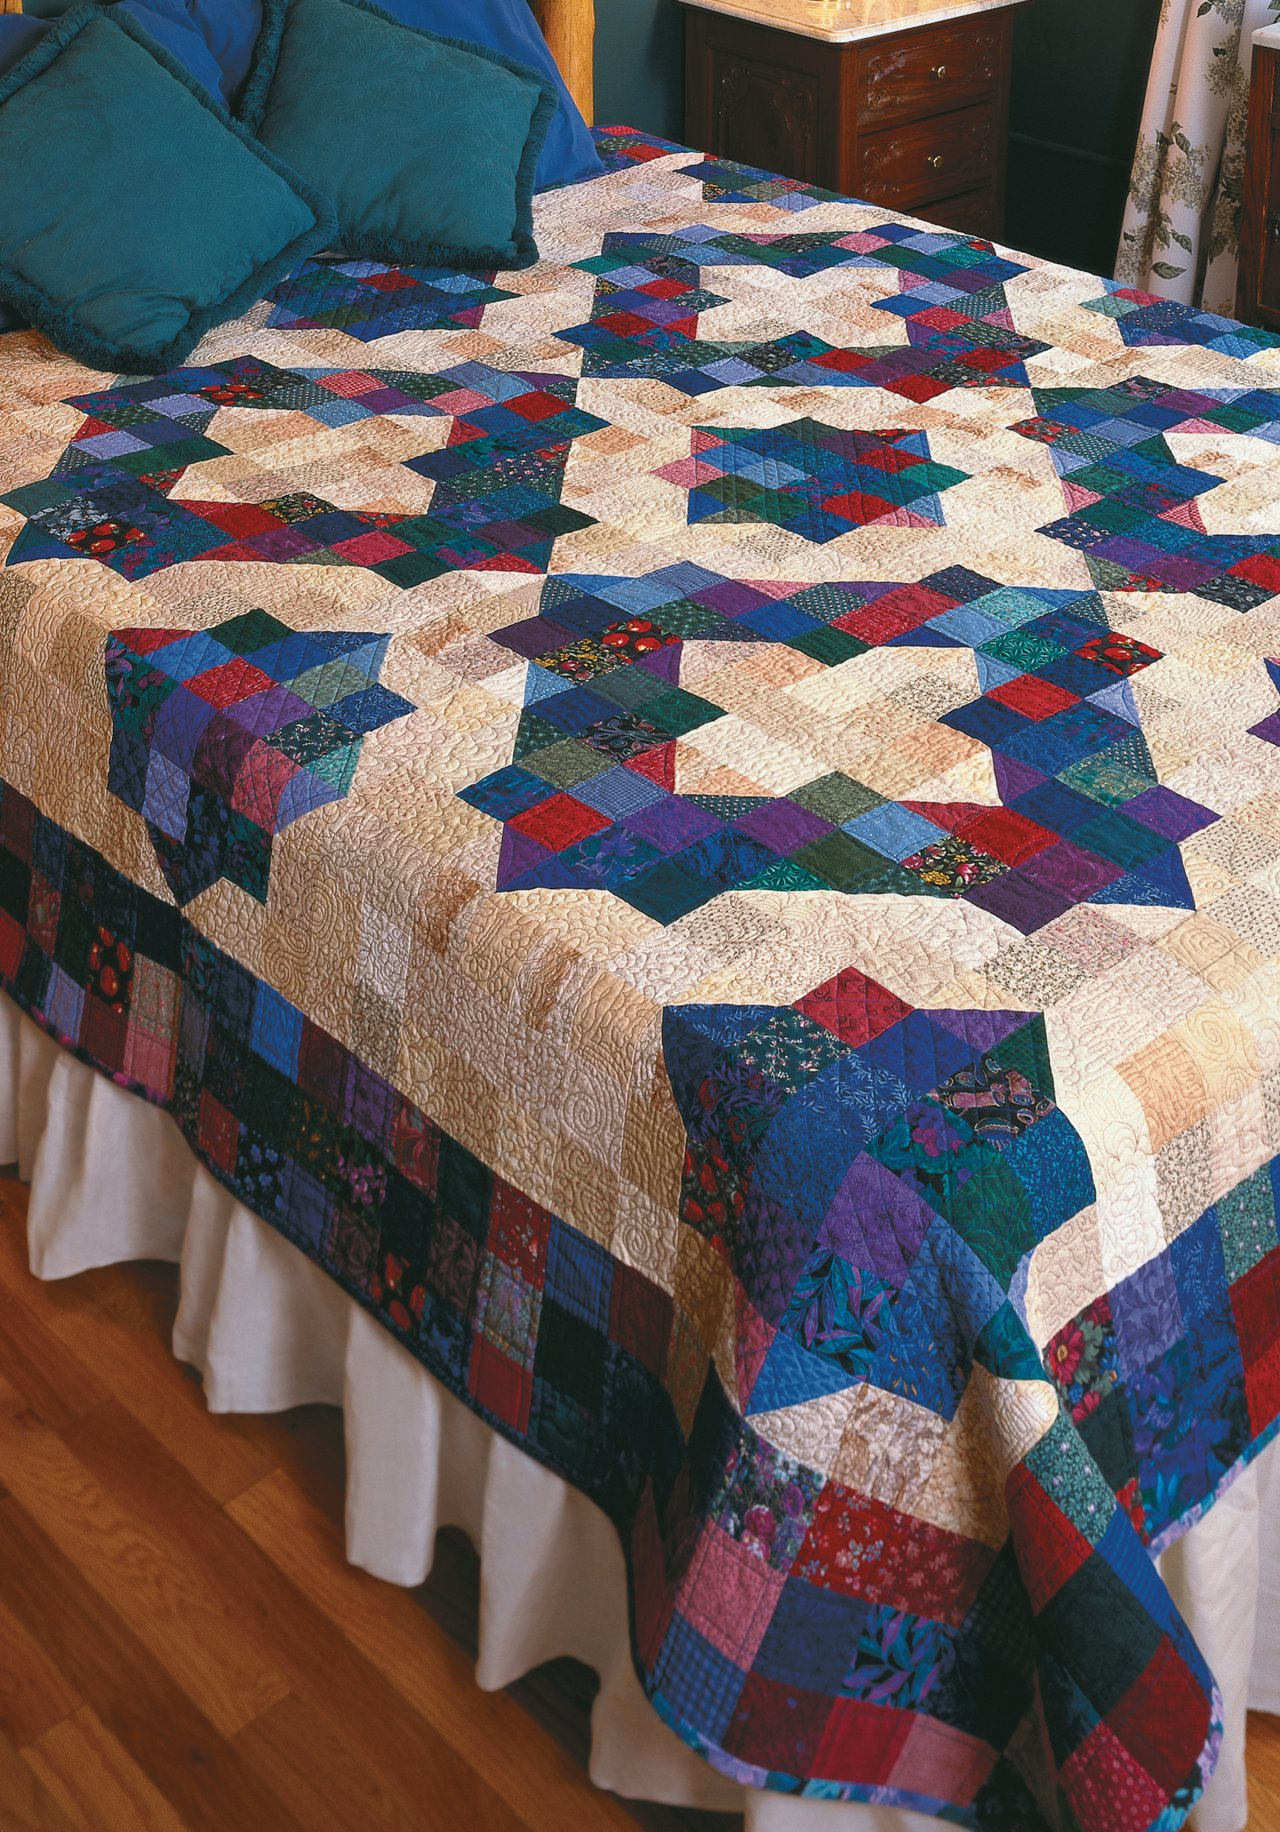 Easy Quilts for Beginners and Beyond: 14 Quilt Patterns from ... : step by step quilting for beginners - Adamdwight.com